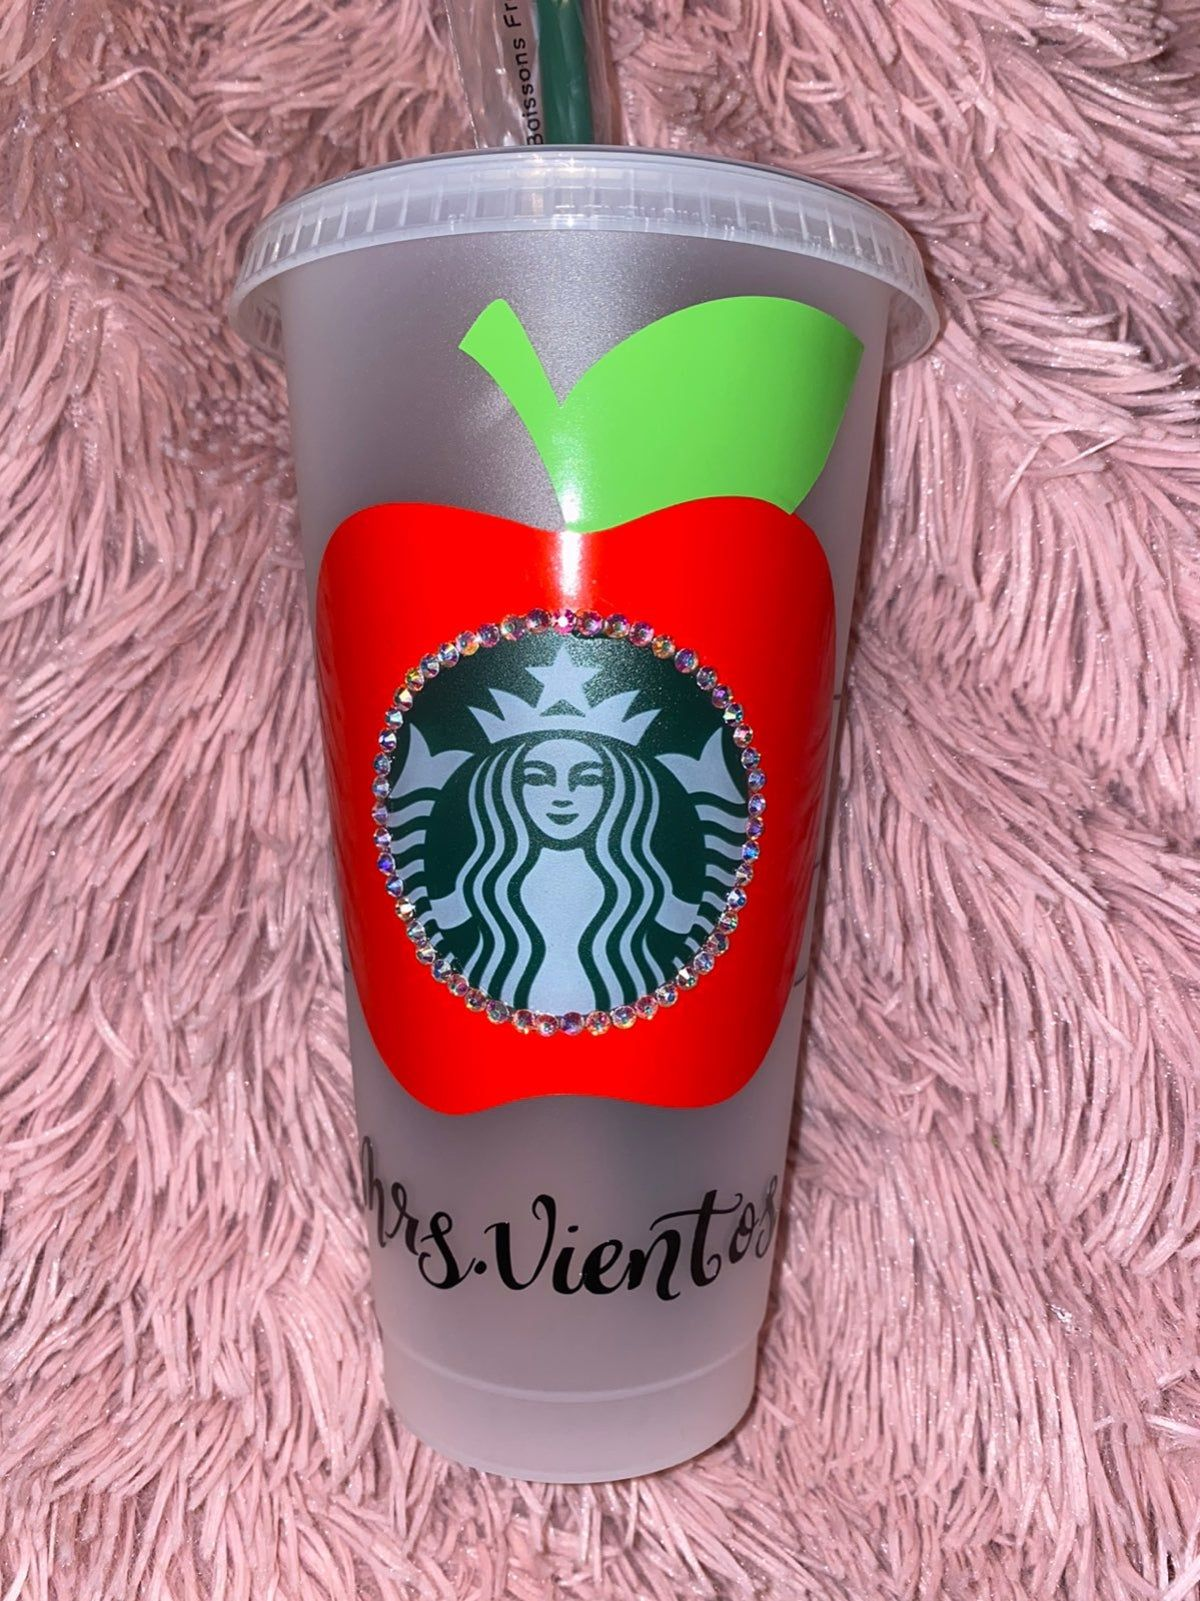 Teacher Blinged Out Starbucks Cup In 2020 Starbucks Cups Starbucks Cup